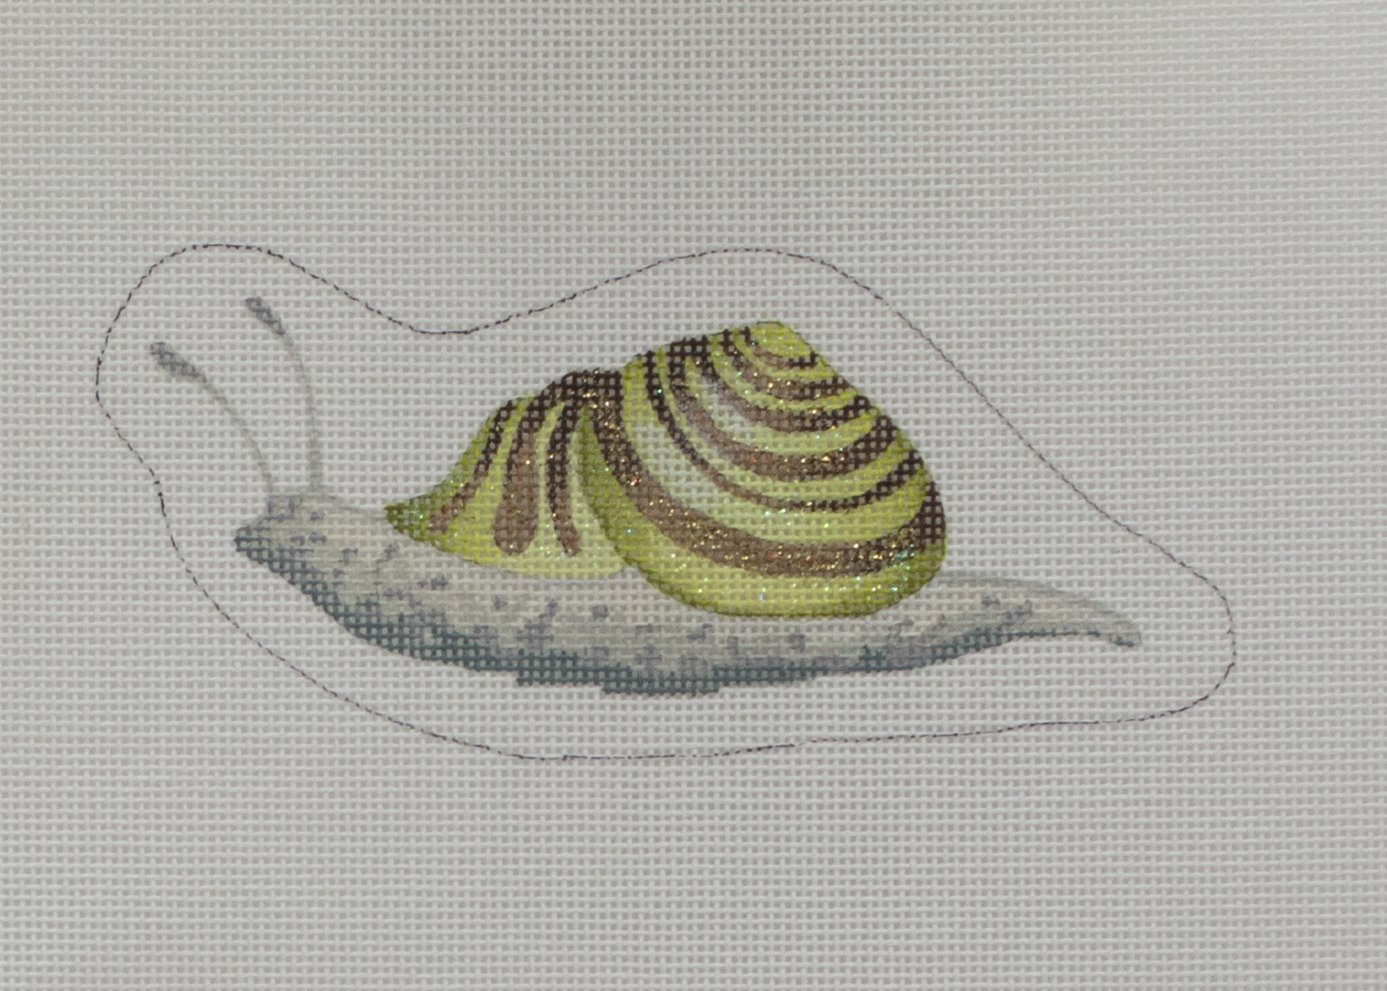 green snazzy snail